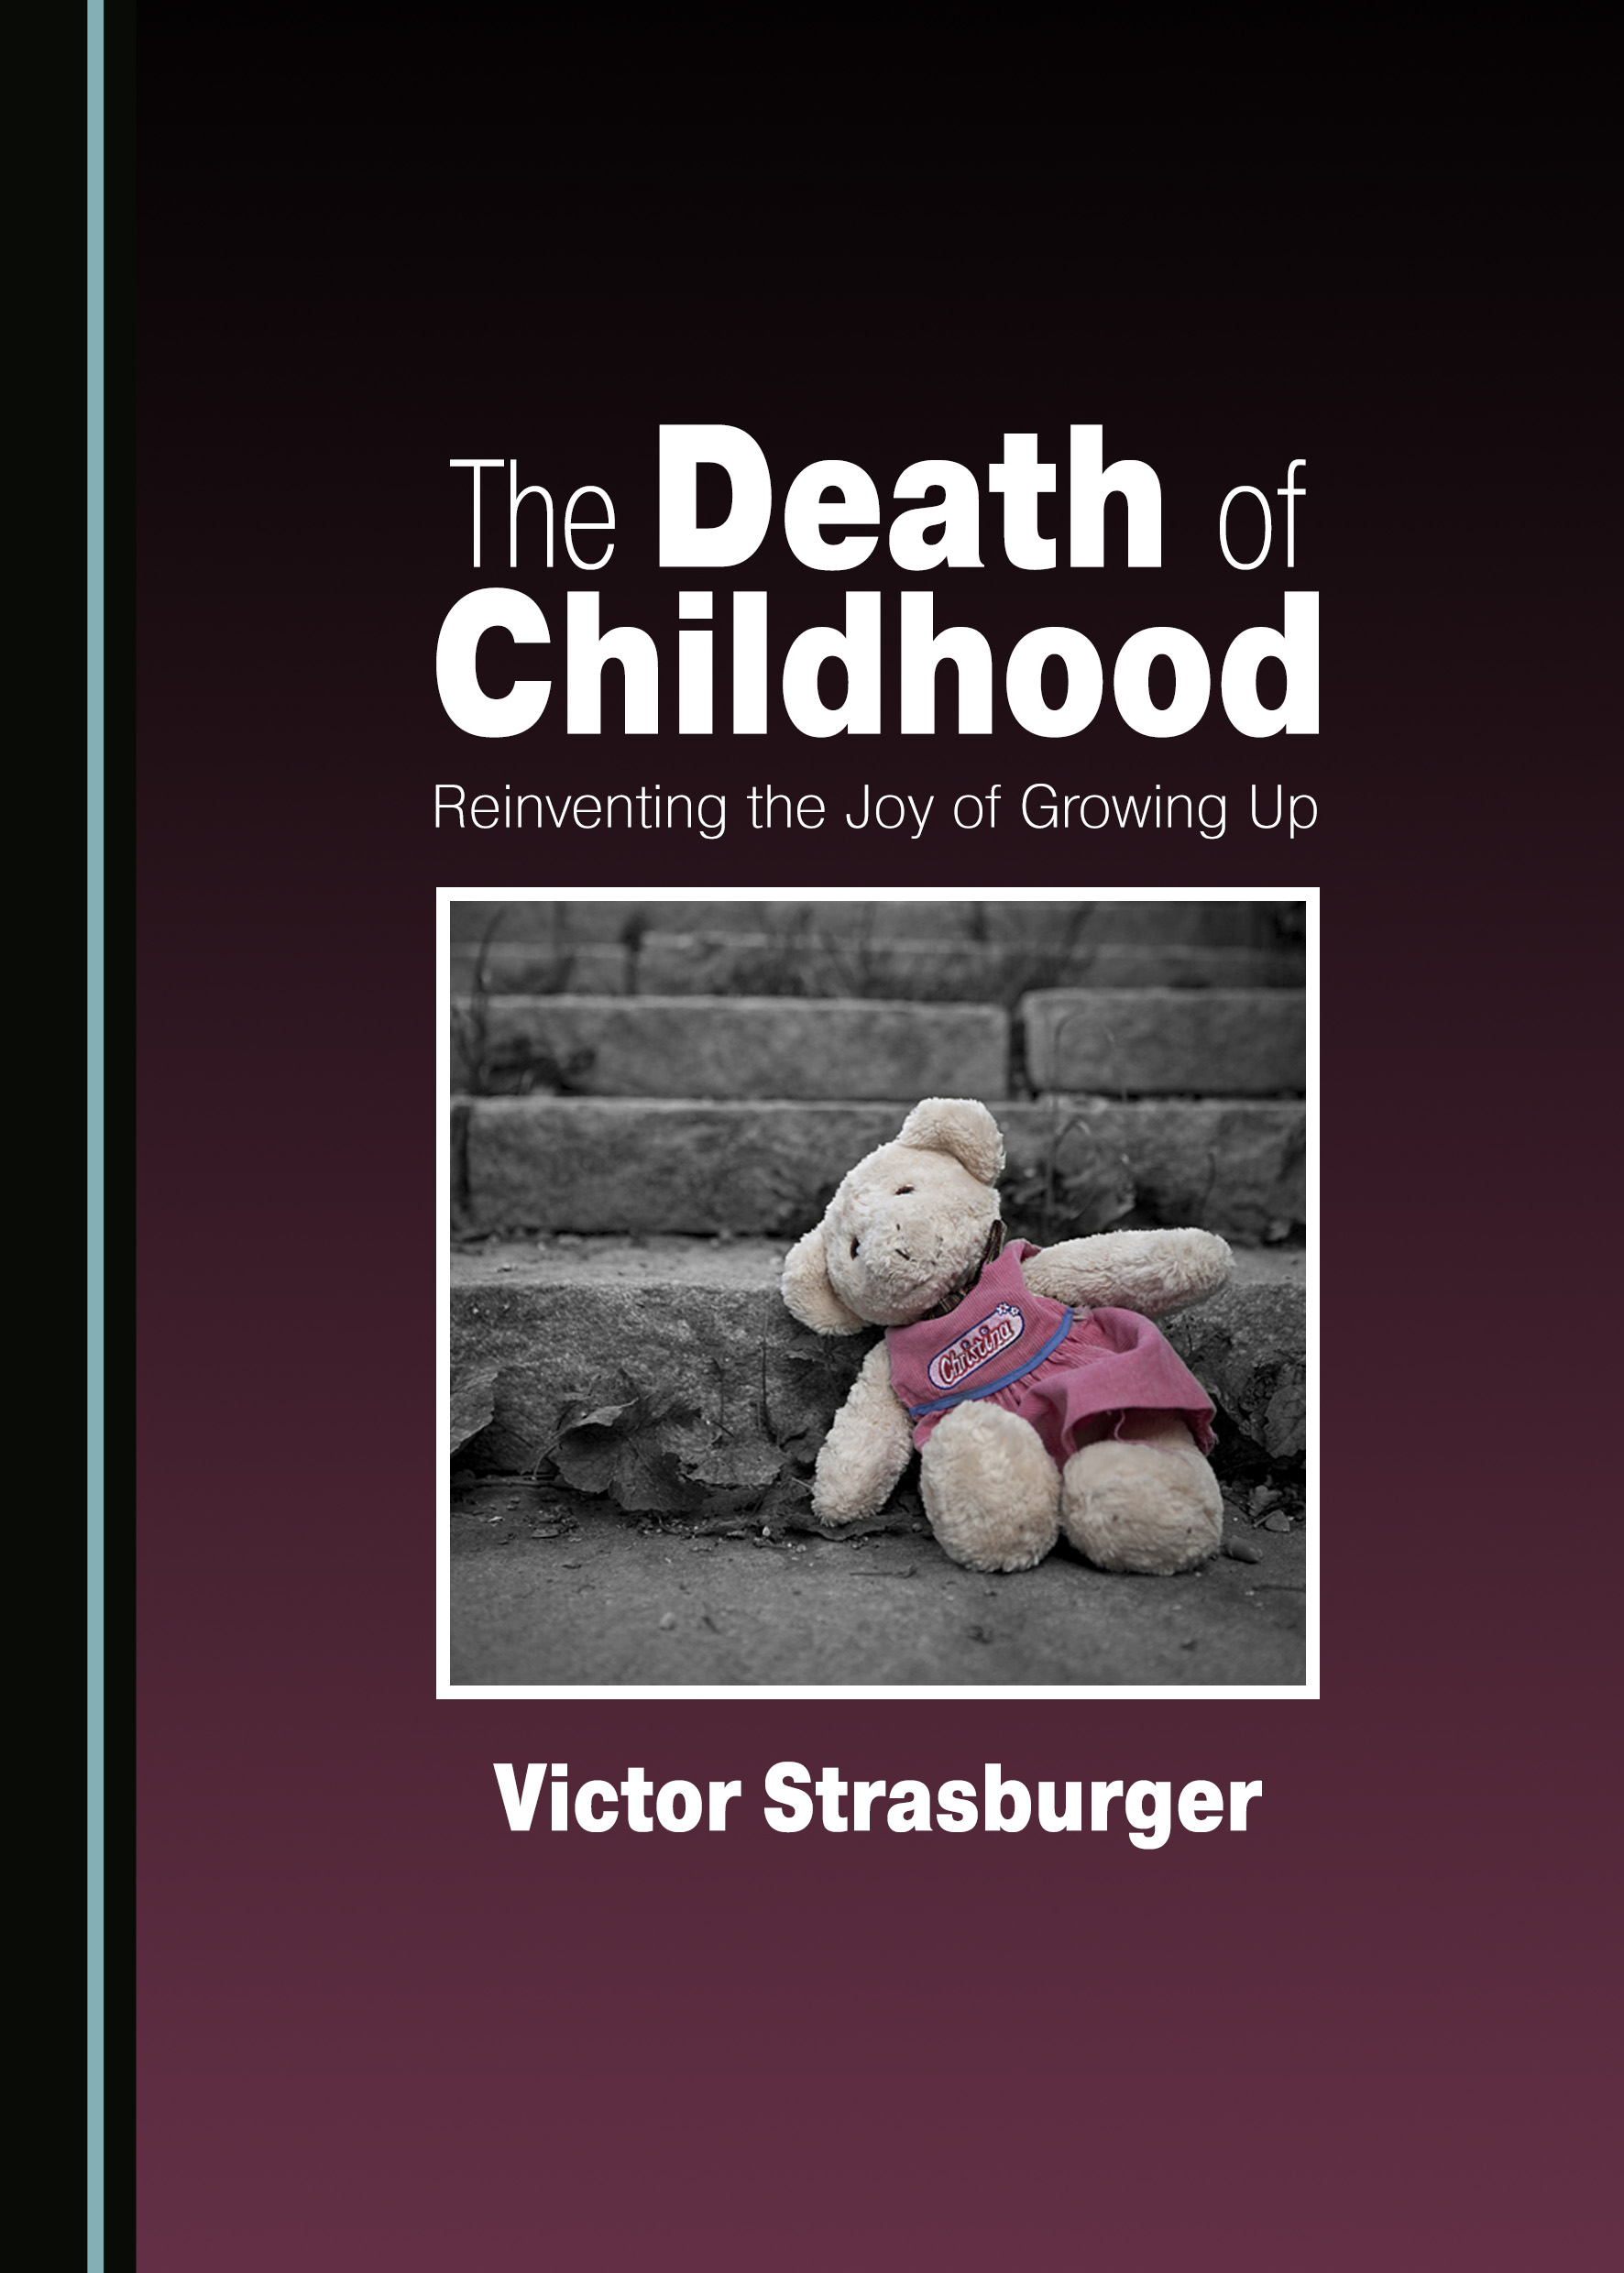 The Death of Childhood: Reinventing the Joy of Growing Up